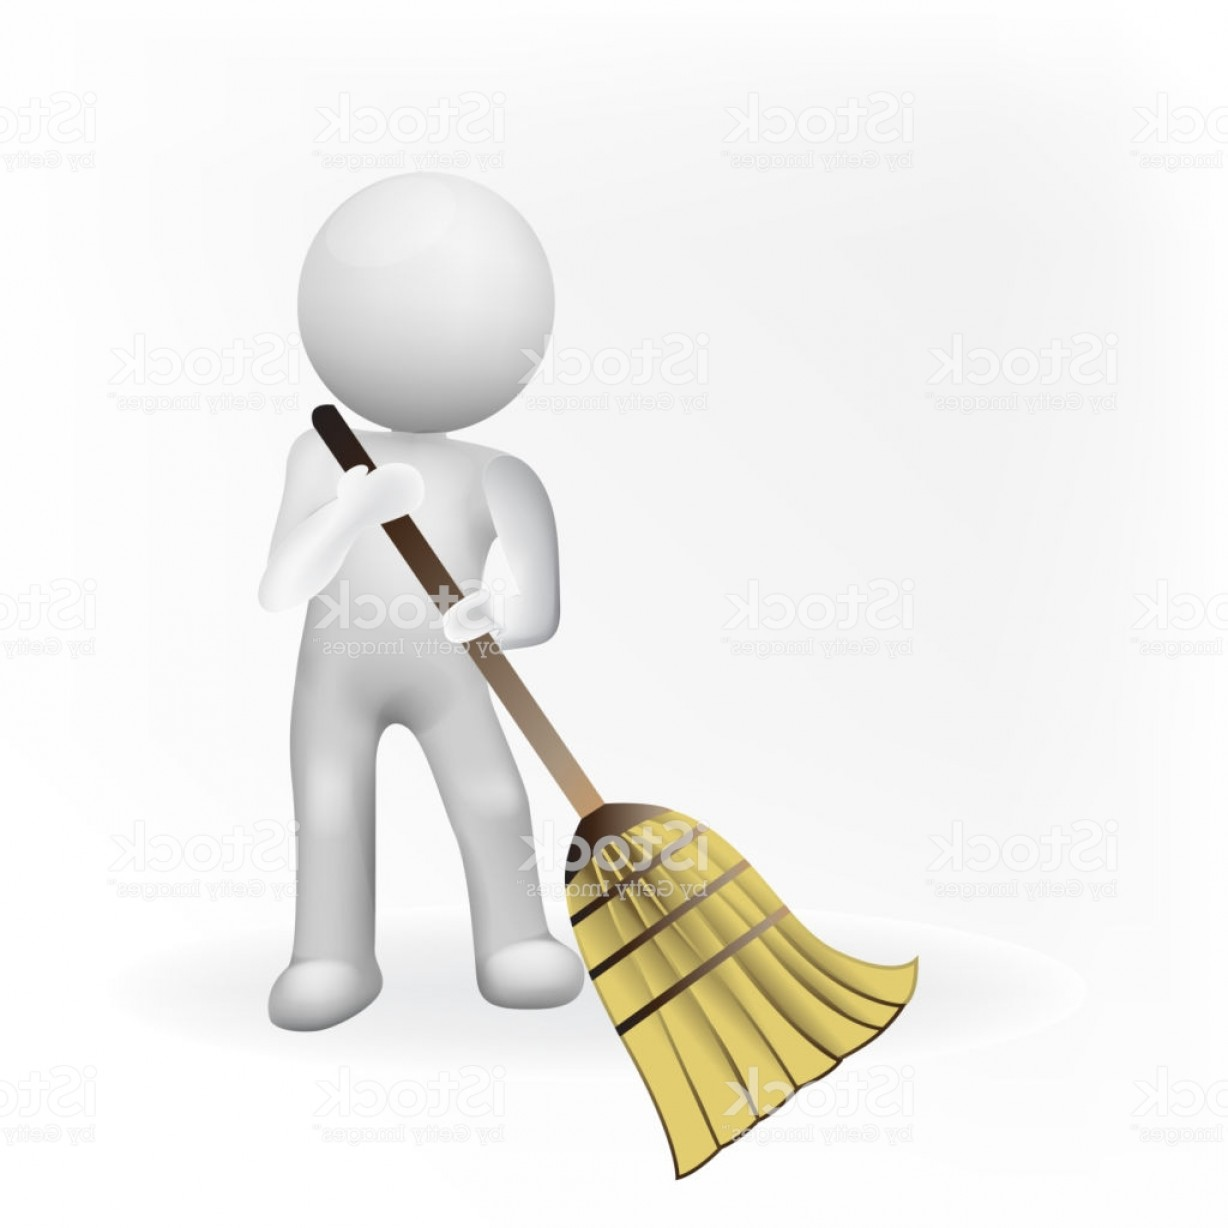 Cleaning Vector Janitorail: Janitorial Services Small D Man With Broom Business Icon Vector Gm